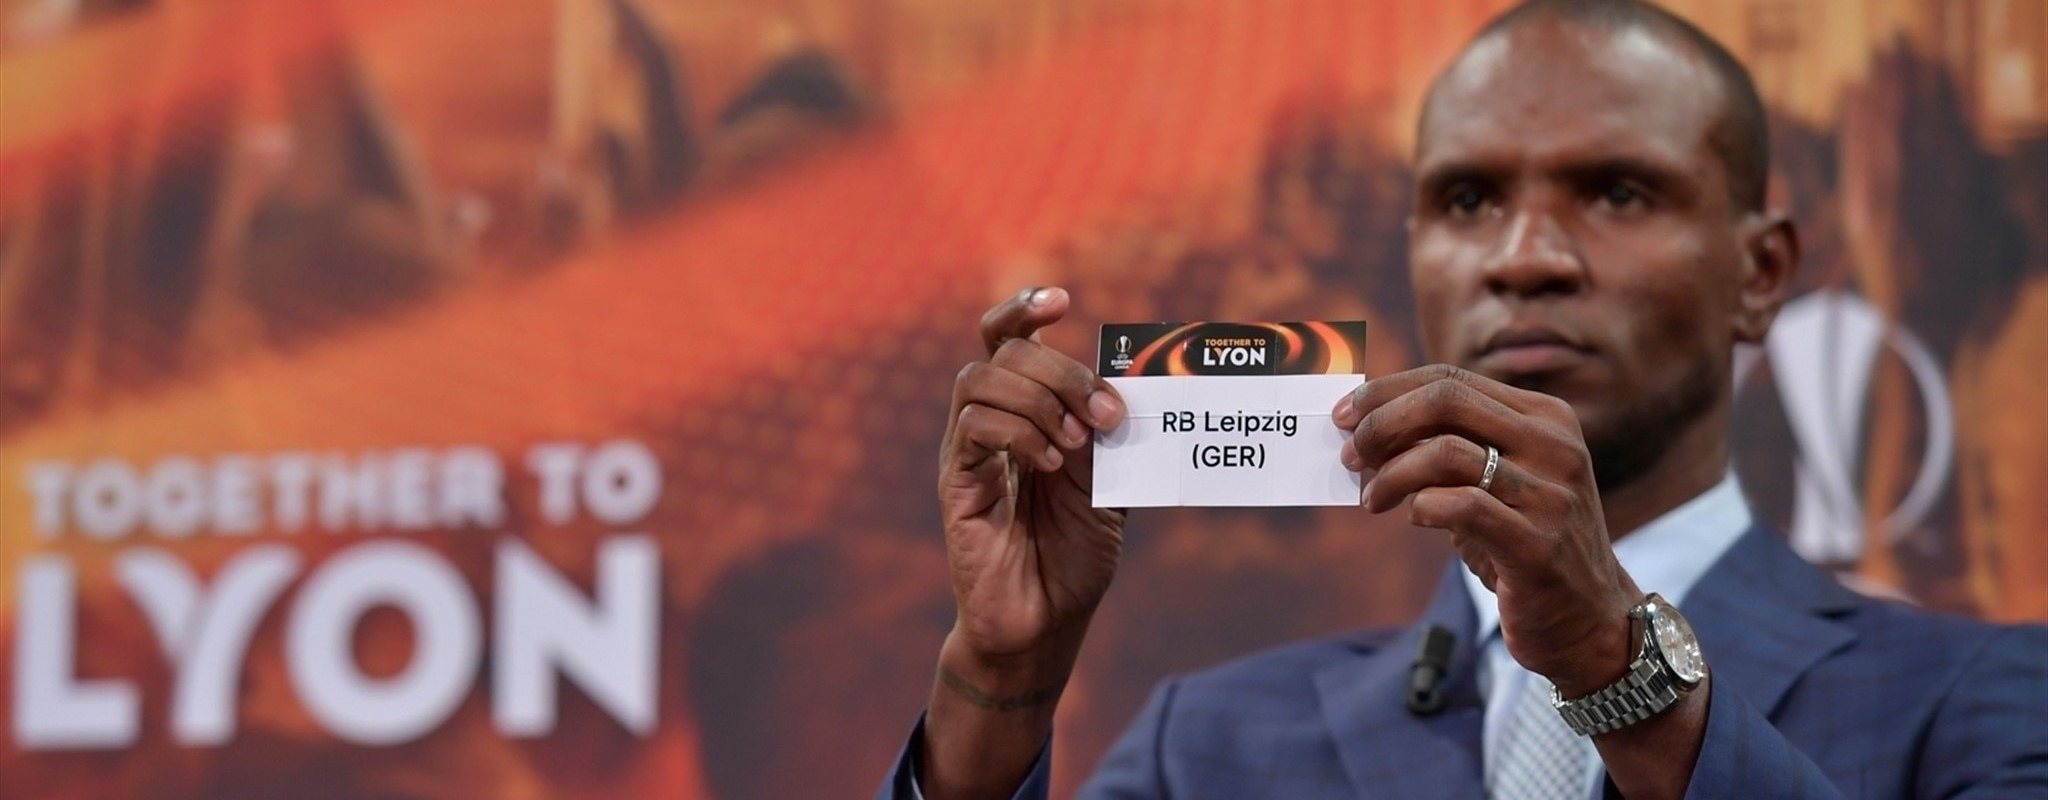 UEFA Europa League round of 32 draw made